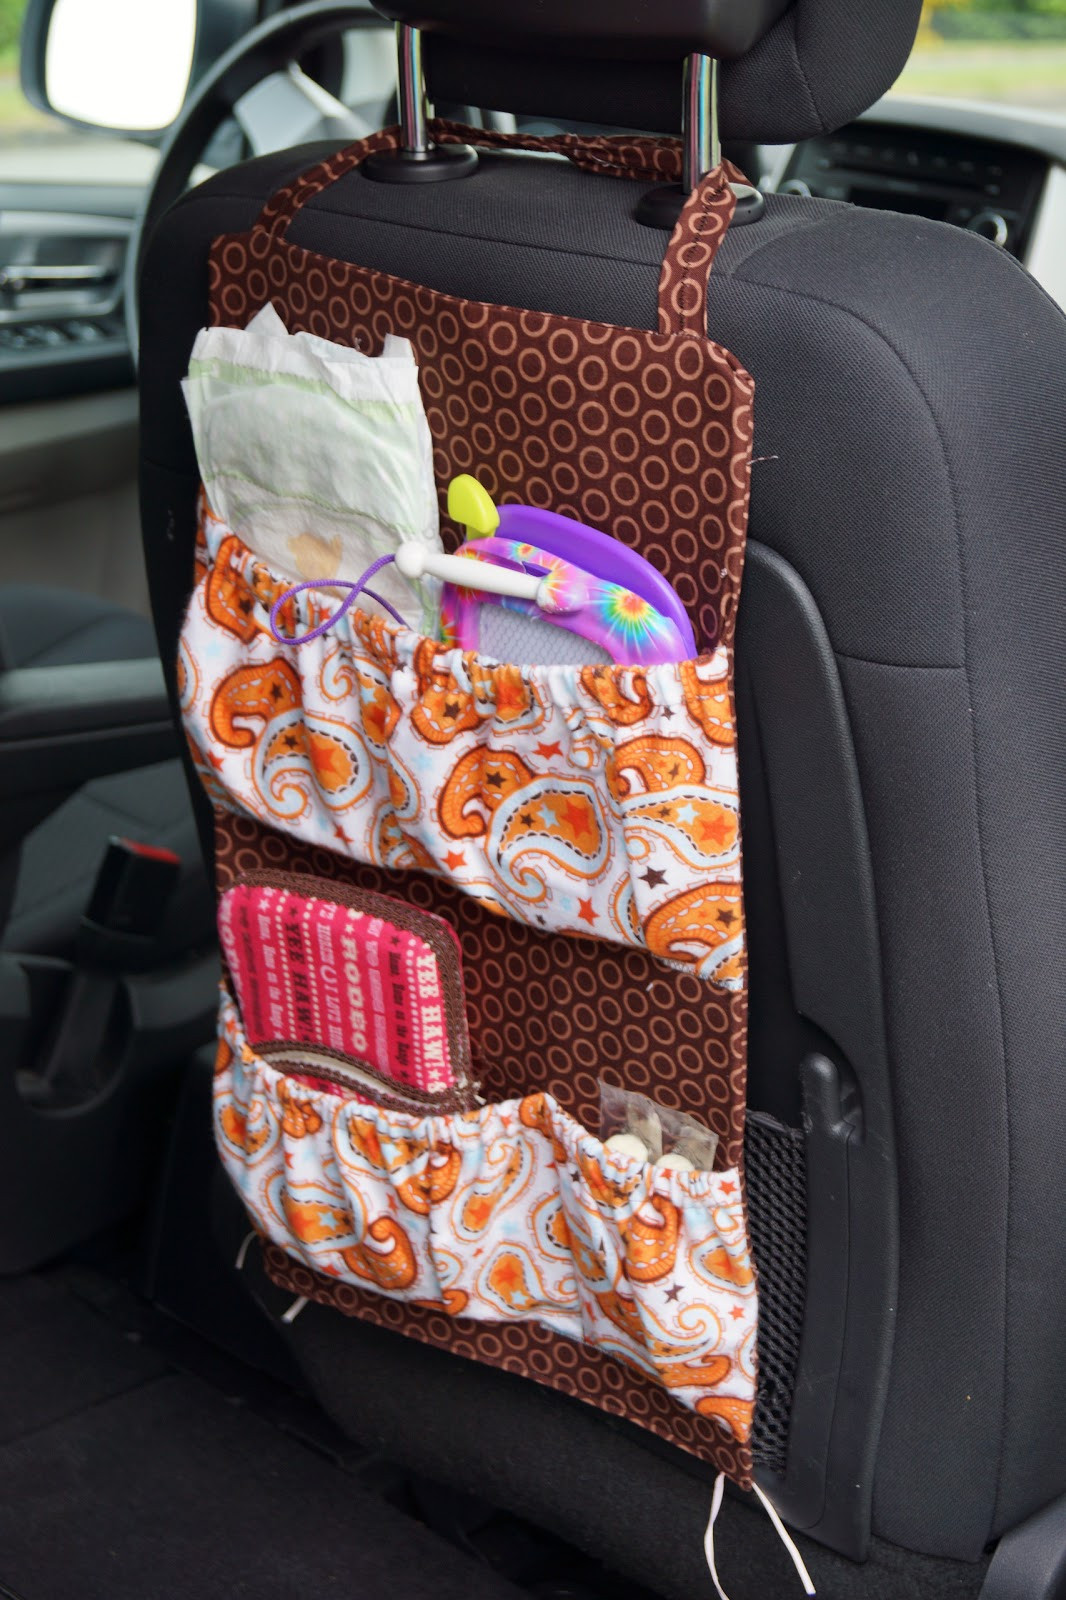 Best ideas about DIY Car Organizers . Save or Pin Kids Crocheting and Cupcakes Thrifty Thursday Car Junk Now.